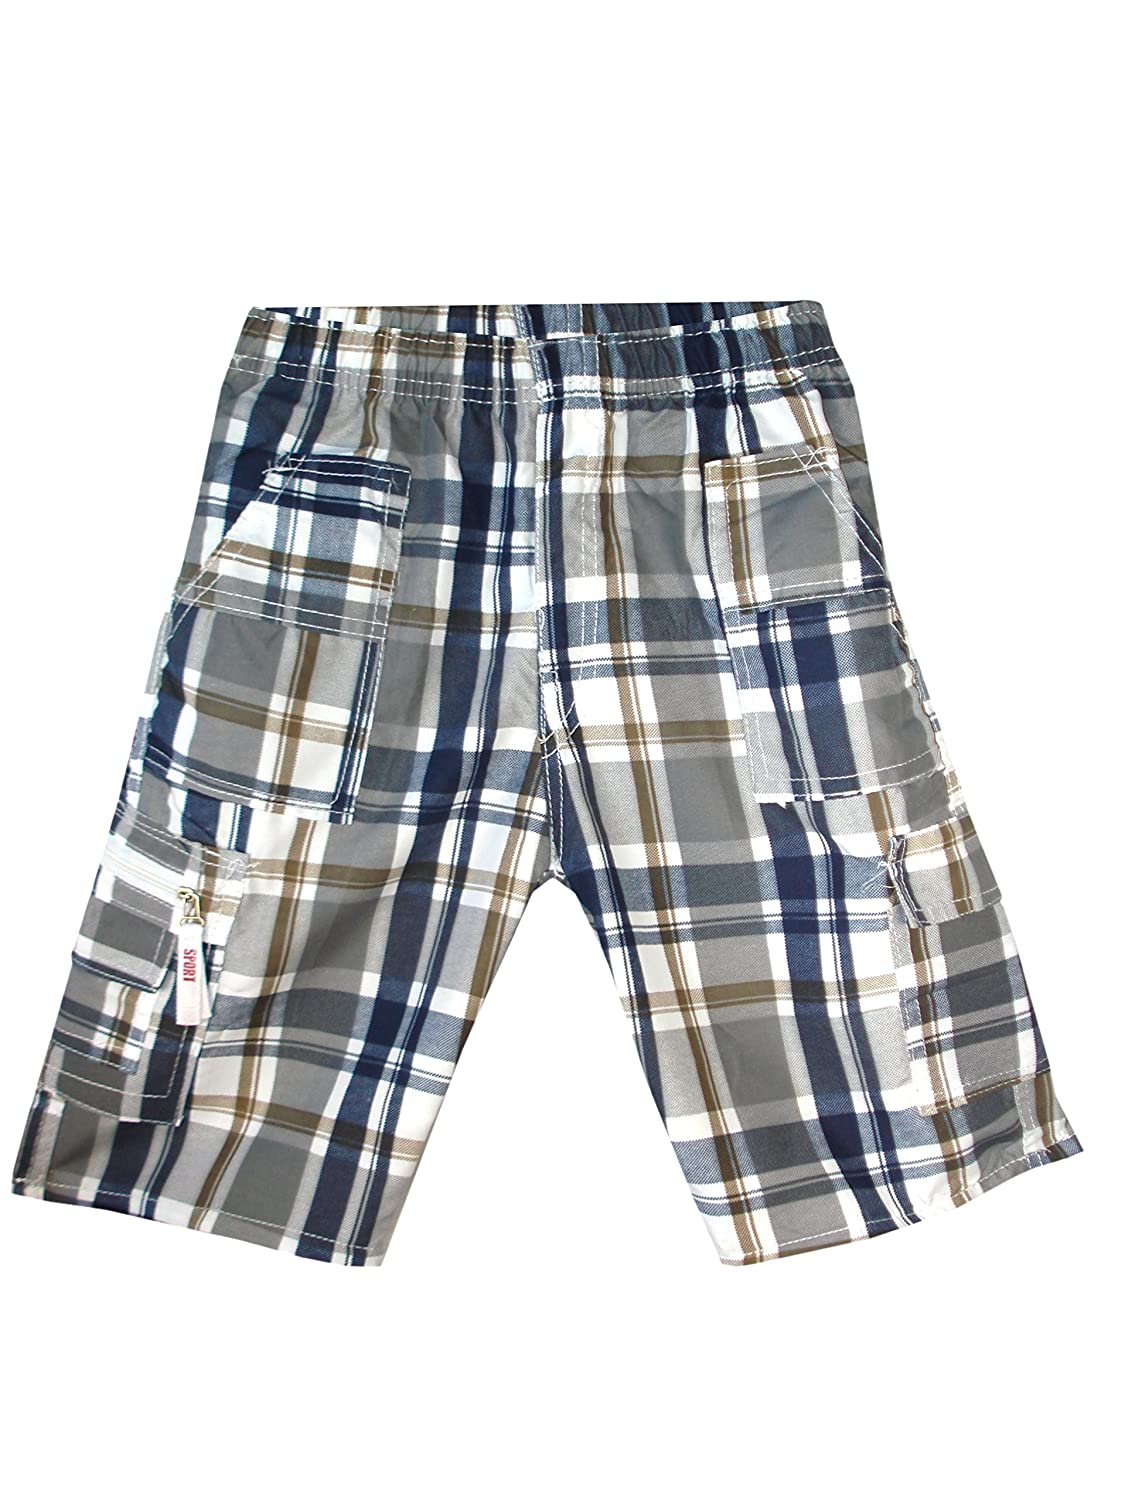 Boys Camouflage Checked Shorts Multipocket /¾ Length Combat Kids Age 3-14 Years